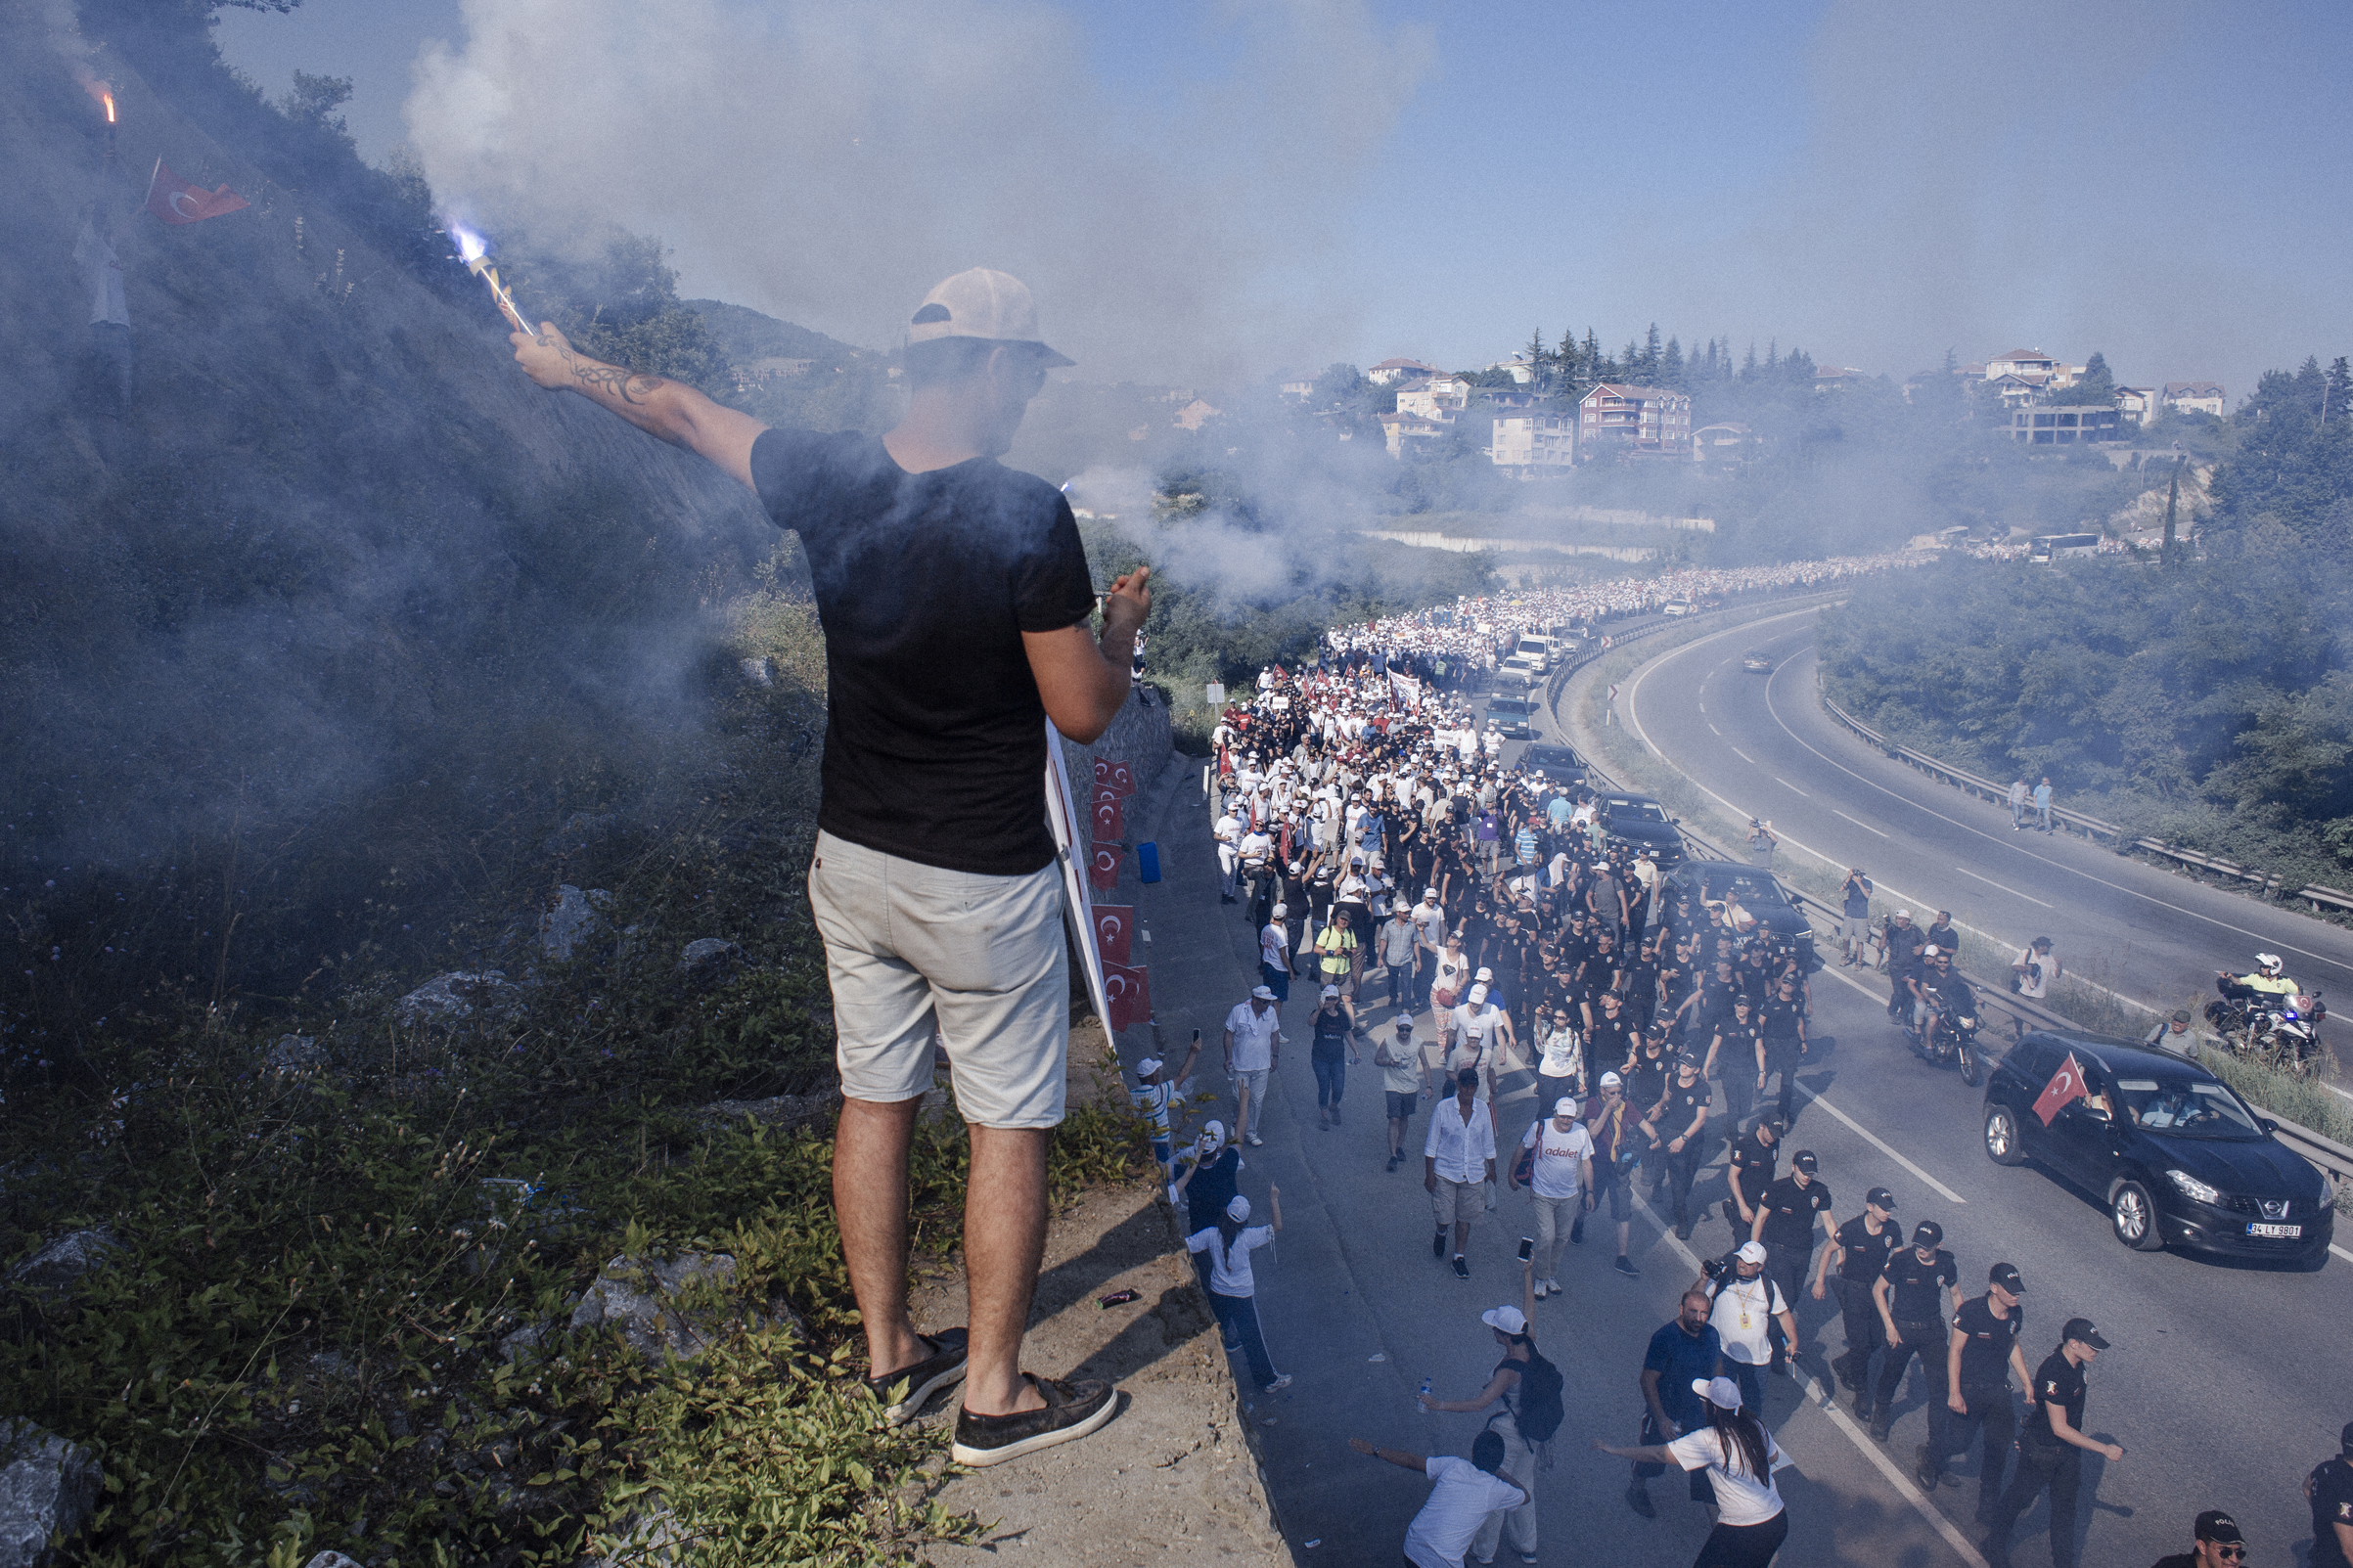 Thousands march for justice from Ankara to Istanbul, led by CHP (Republican People's Party) opposition leader Kemal Kilicdaroglu, Sakarya, Turkey, July 2, 2017.  The demonstrators are protesting the more than 47,000 people who have been arrested since last year's attempted coup of July 15, 2016.